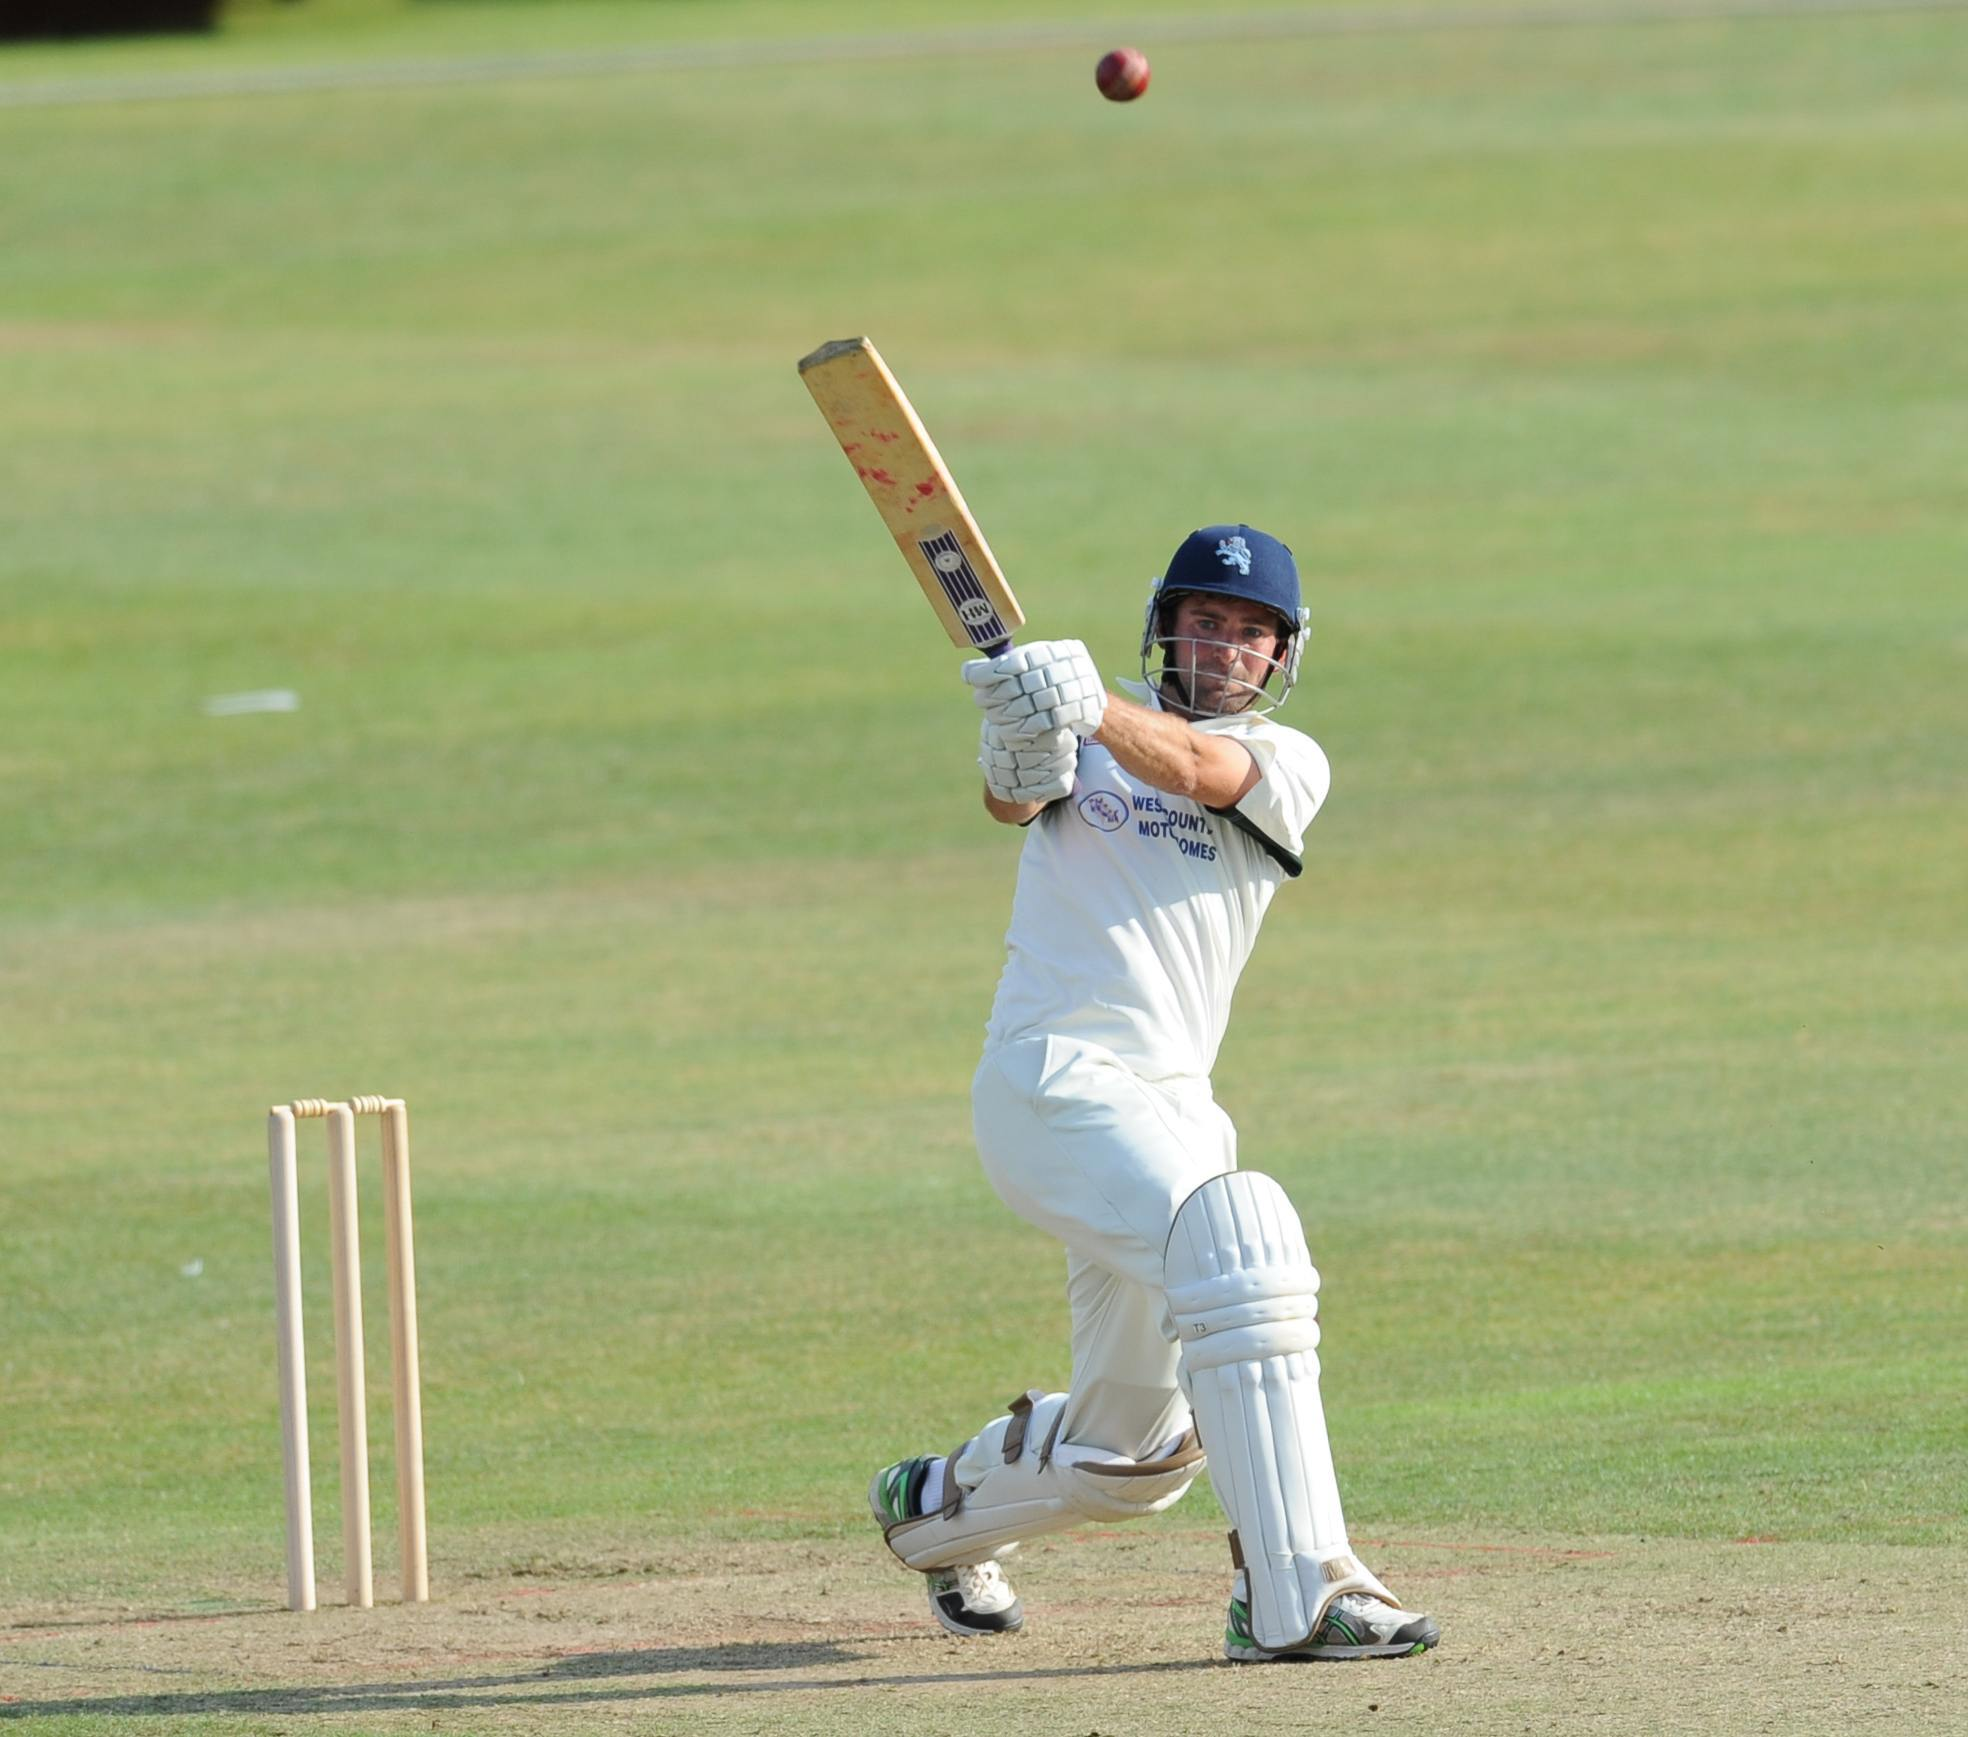 TON-UP: Robert Woodman hit 149 to help Taunton Deane to victory on Saturday.